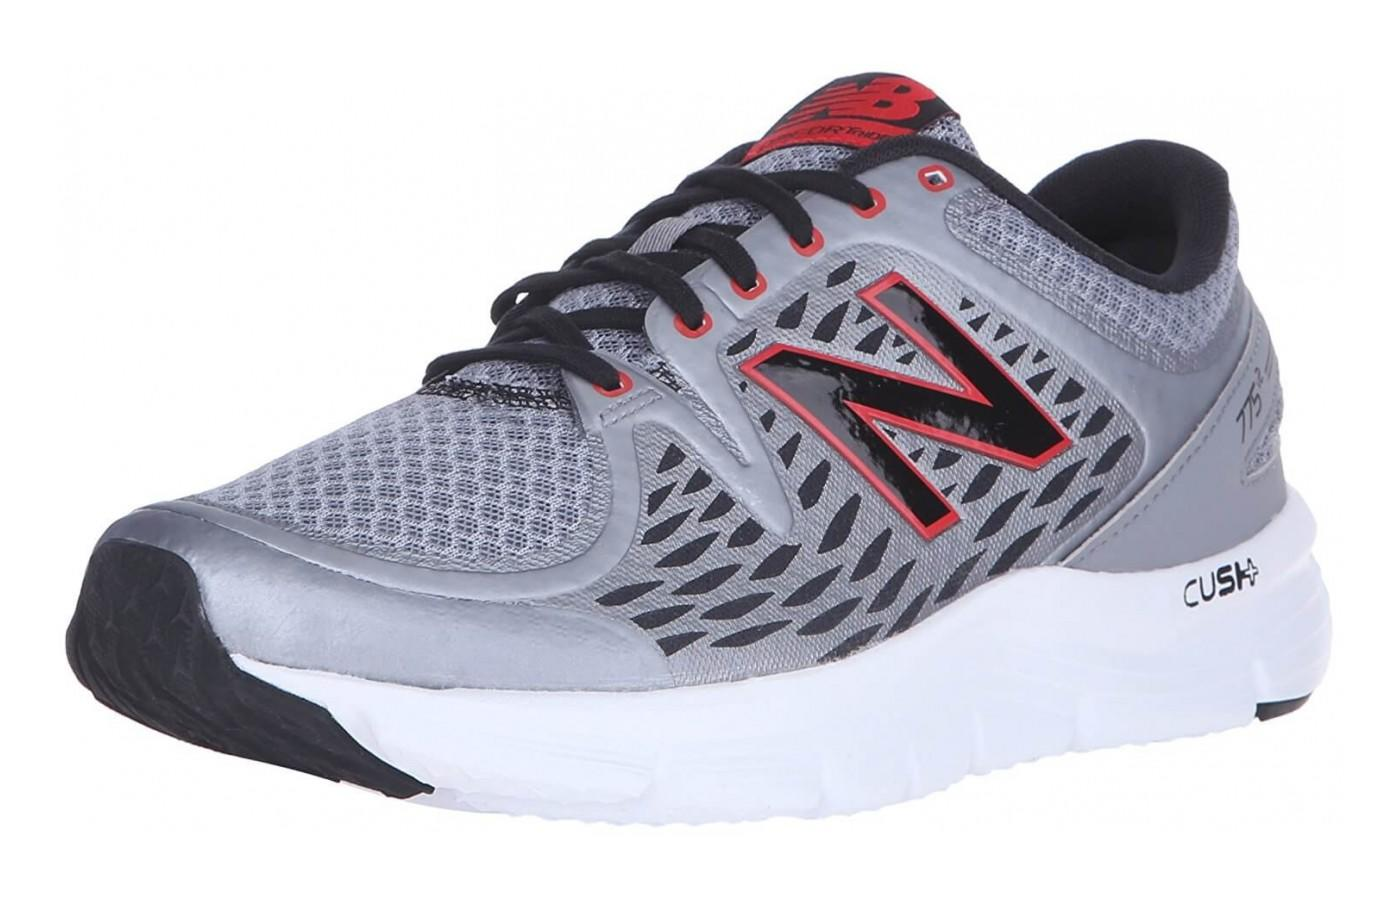 Leo un libro escándalo Mucho  Limited Time Deals·New Deals Everyday new balance 775v2 womens, OFF 72%,Buy!